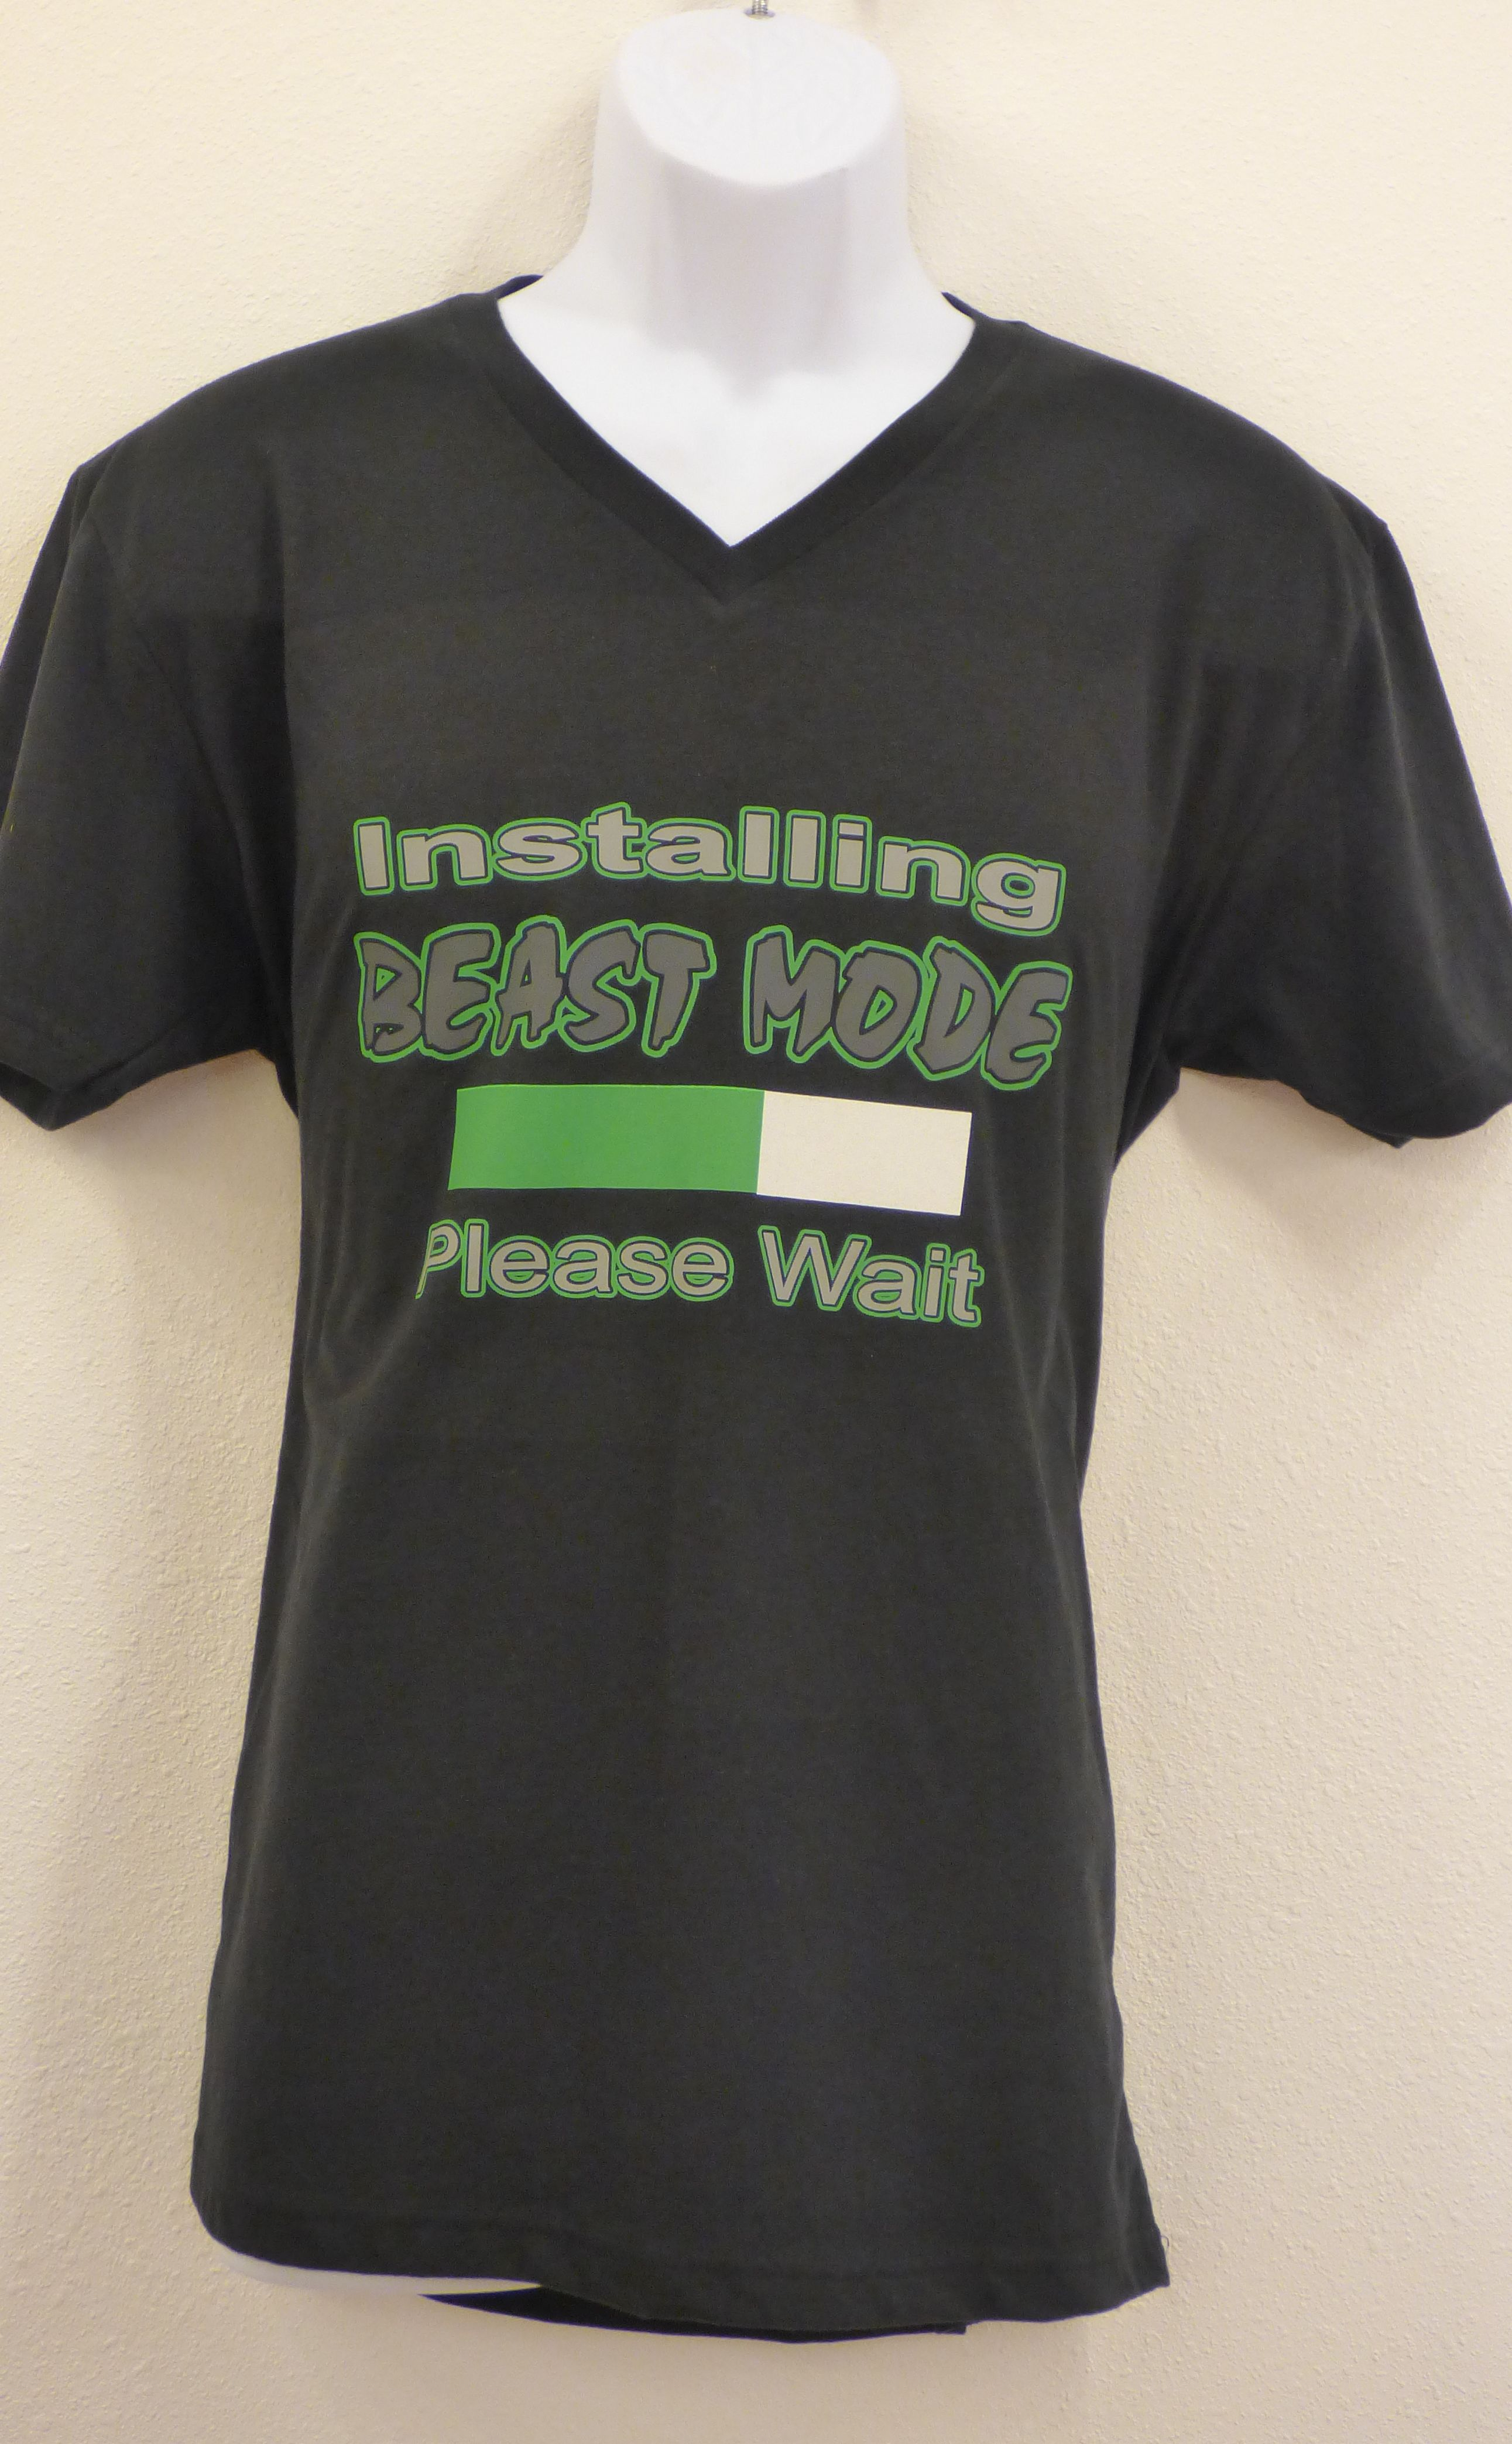 Unisex V-neck 'Installing Beast Mode Please Wait' shirt